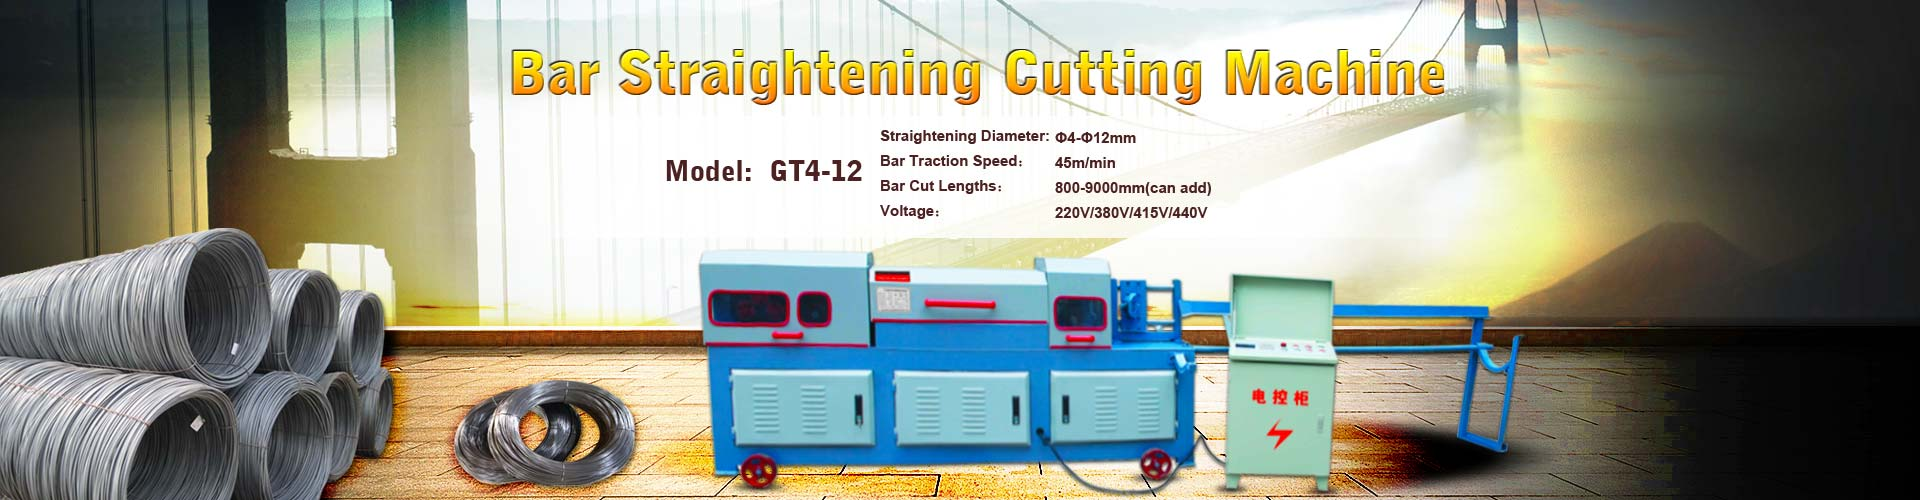 Wire Straightening and Cutting Machine-Automatic